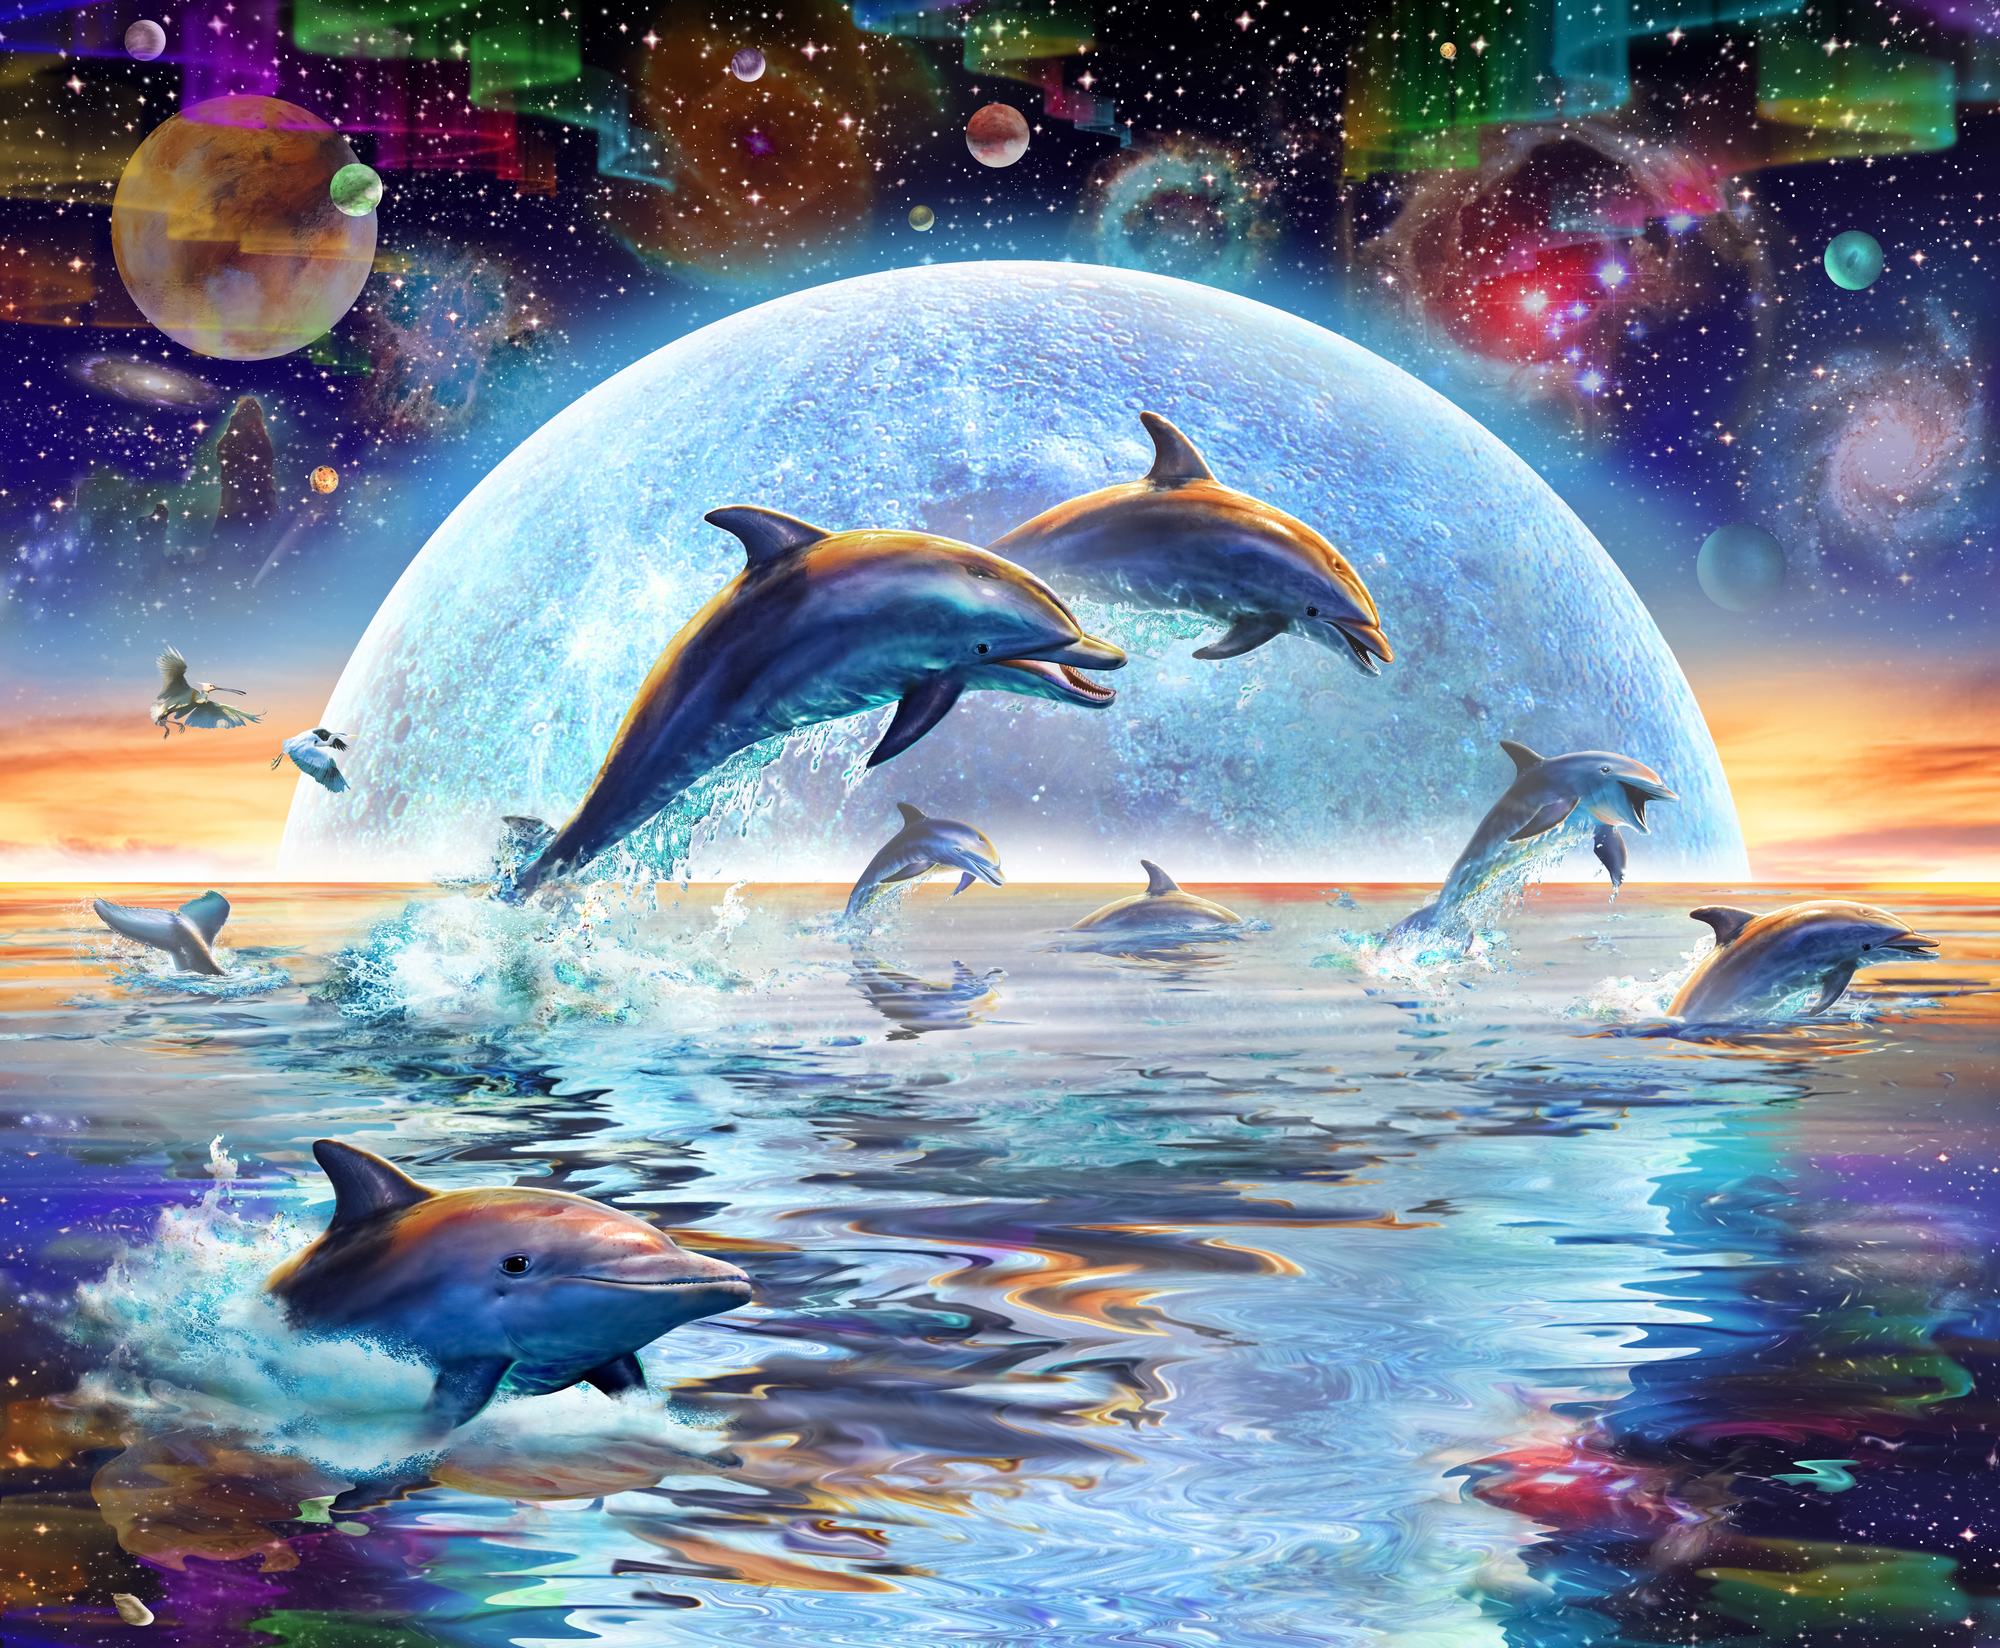 Dolphins by moonlight wall mural dolphins by moonlight for Dolphin mural wallpaper